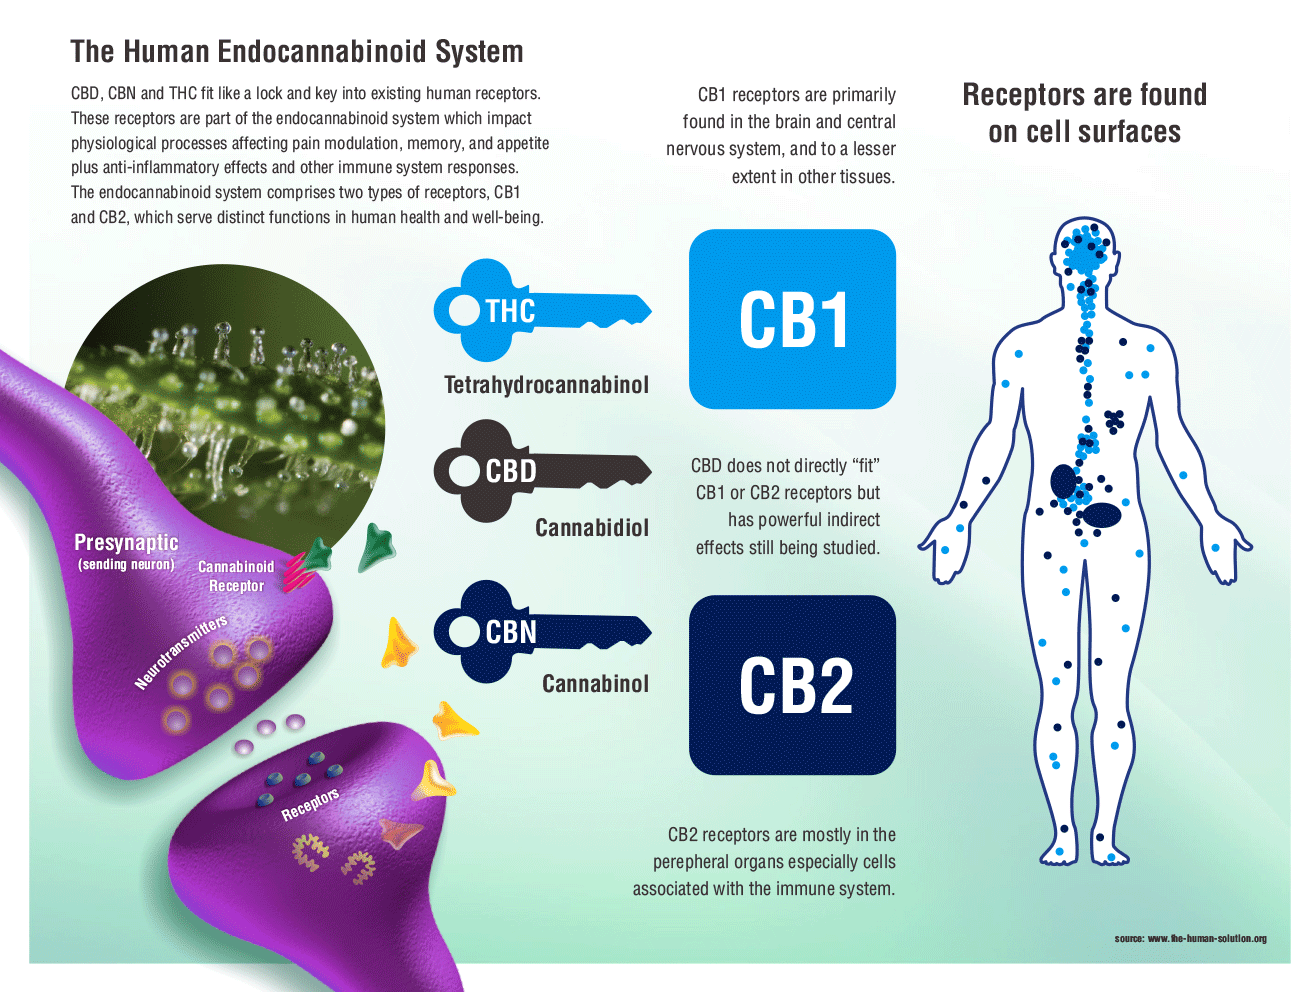 https://medium.com/randy-s-club/supporting-your-endocannabinoid-system-5db4c35d6037